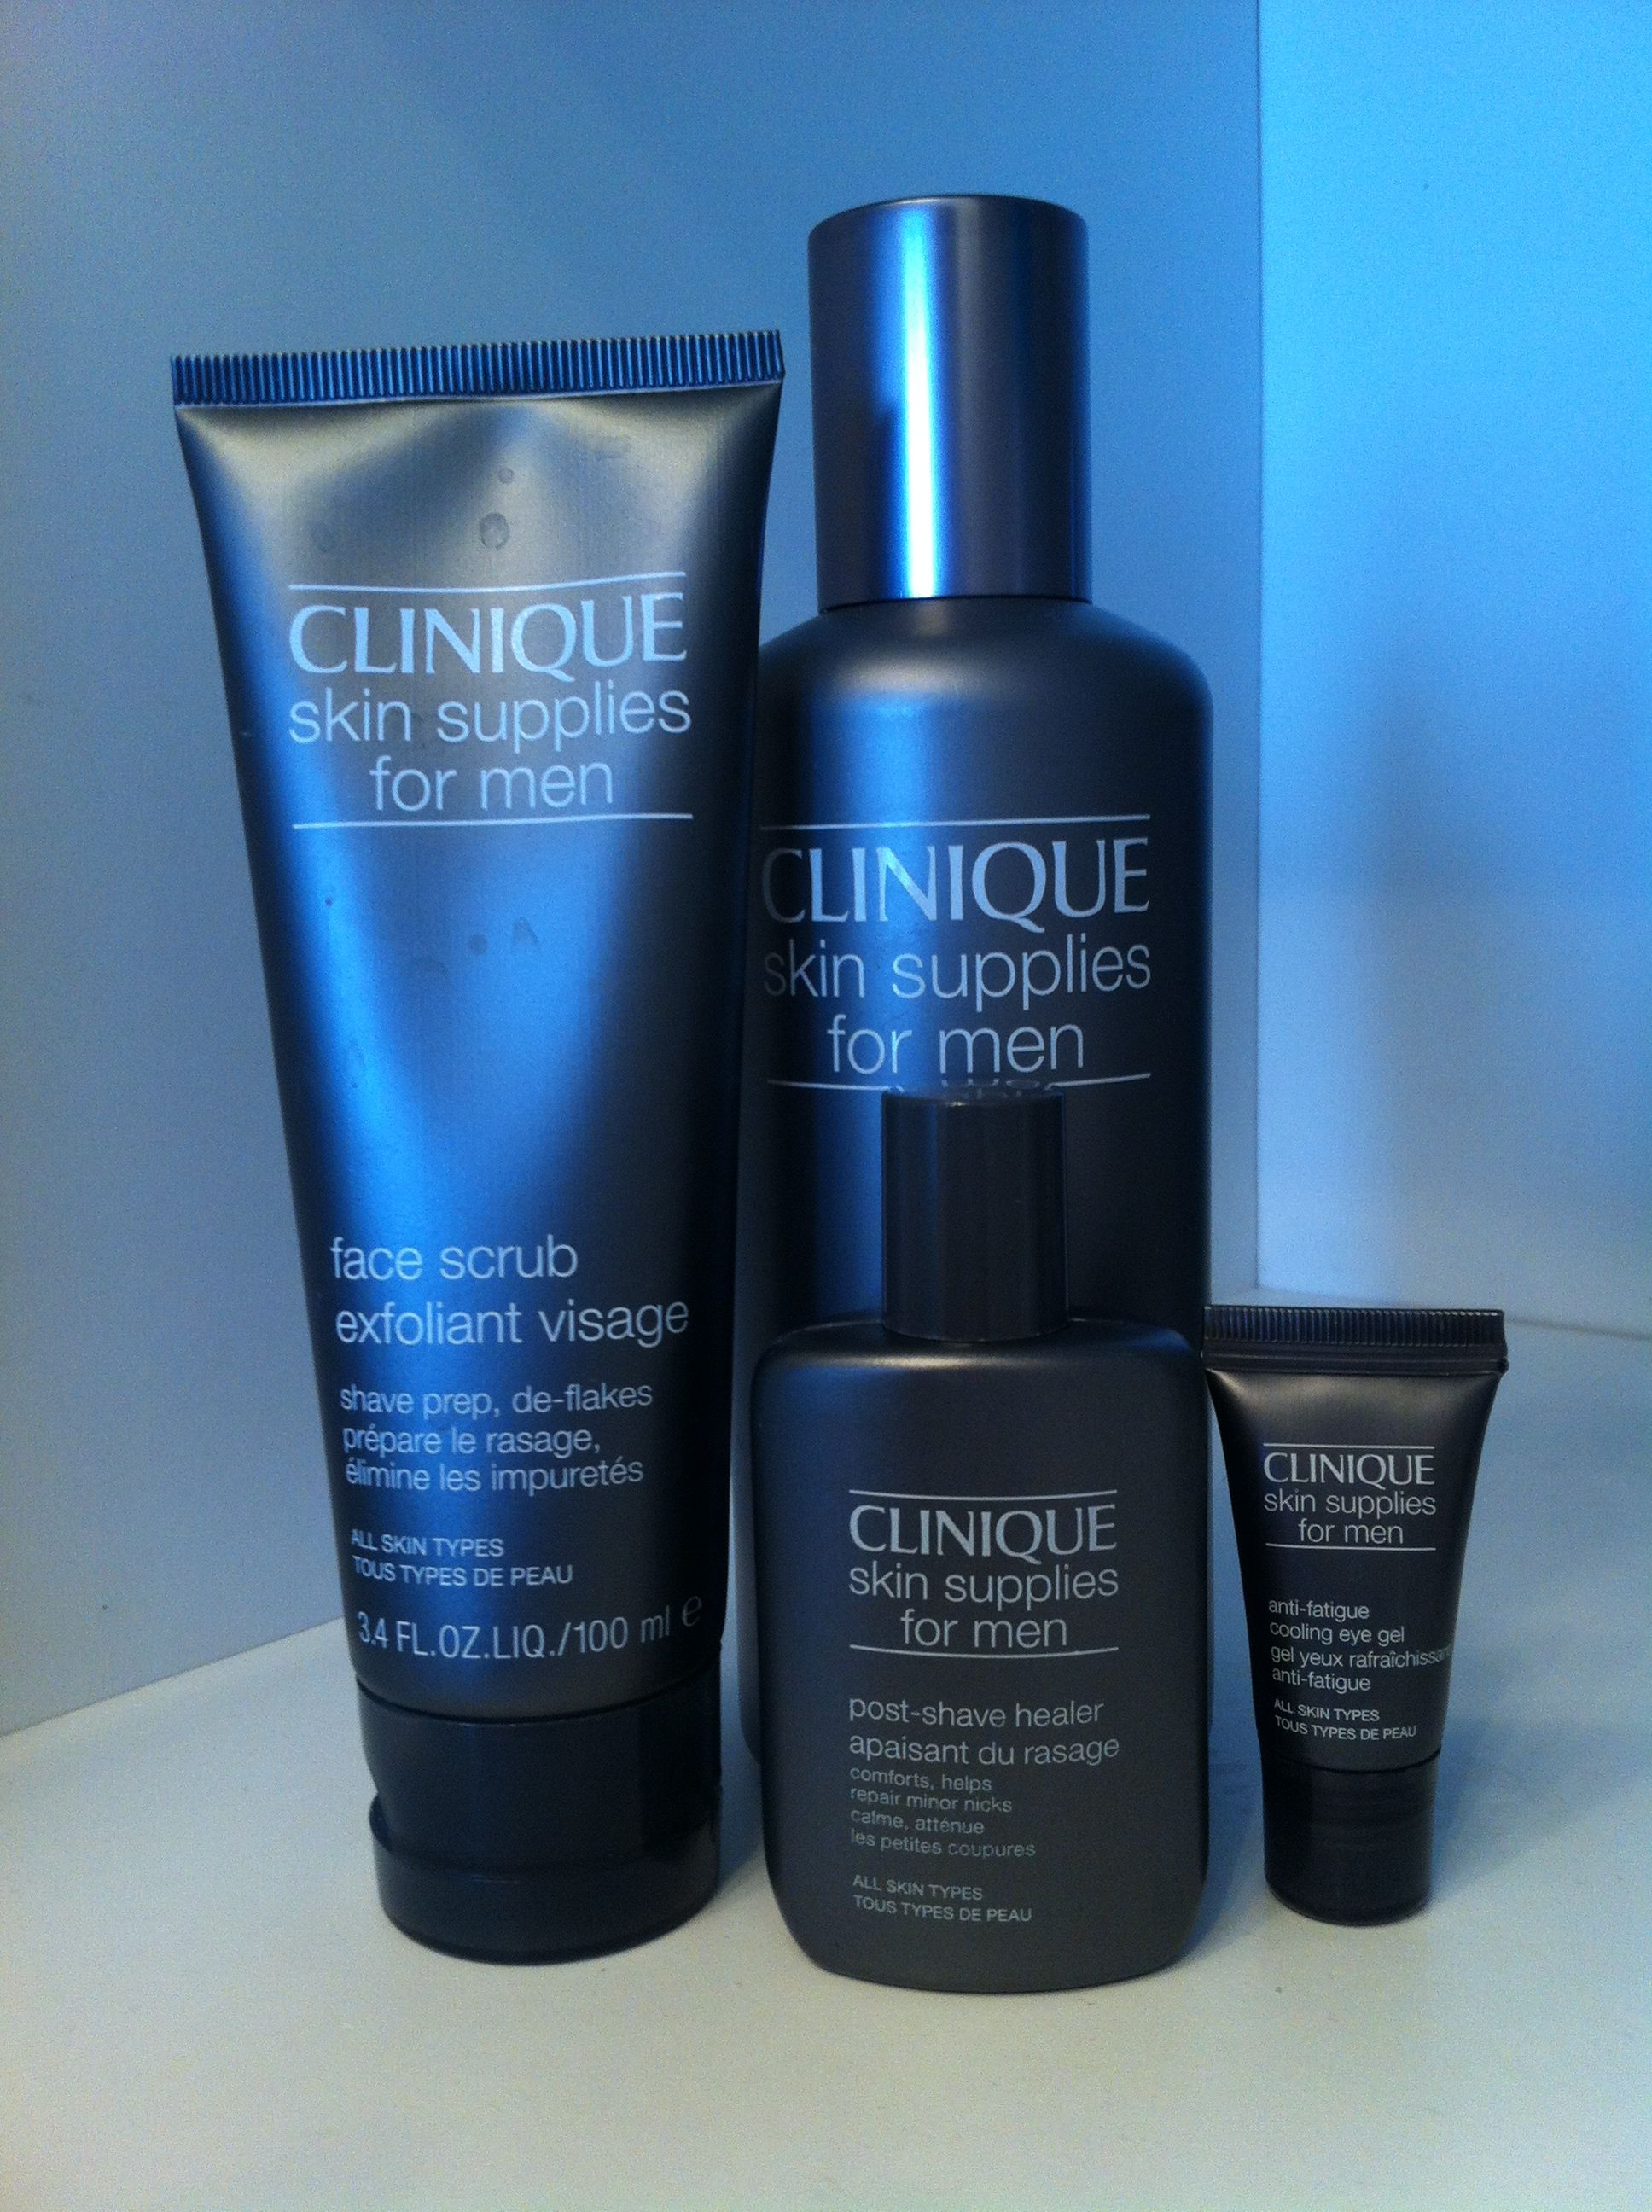 I Say It S The Best Cosmetics Brand For Men Clinique Shaving Clinique Cosmetics Best Cosmetic Brands Cosmetics Brands